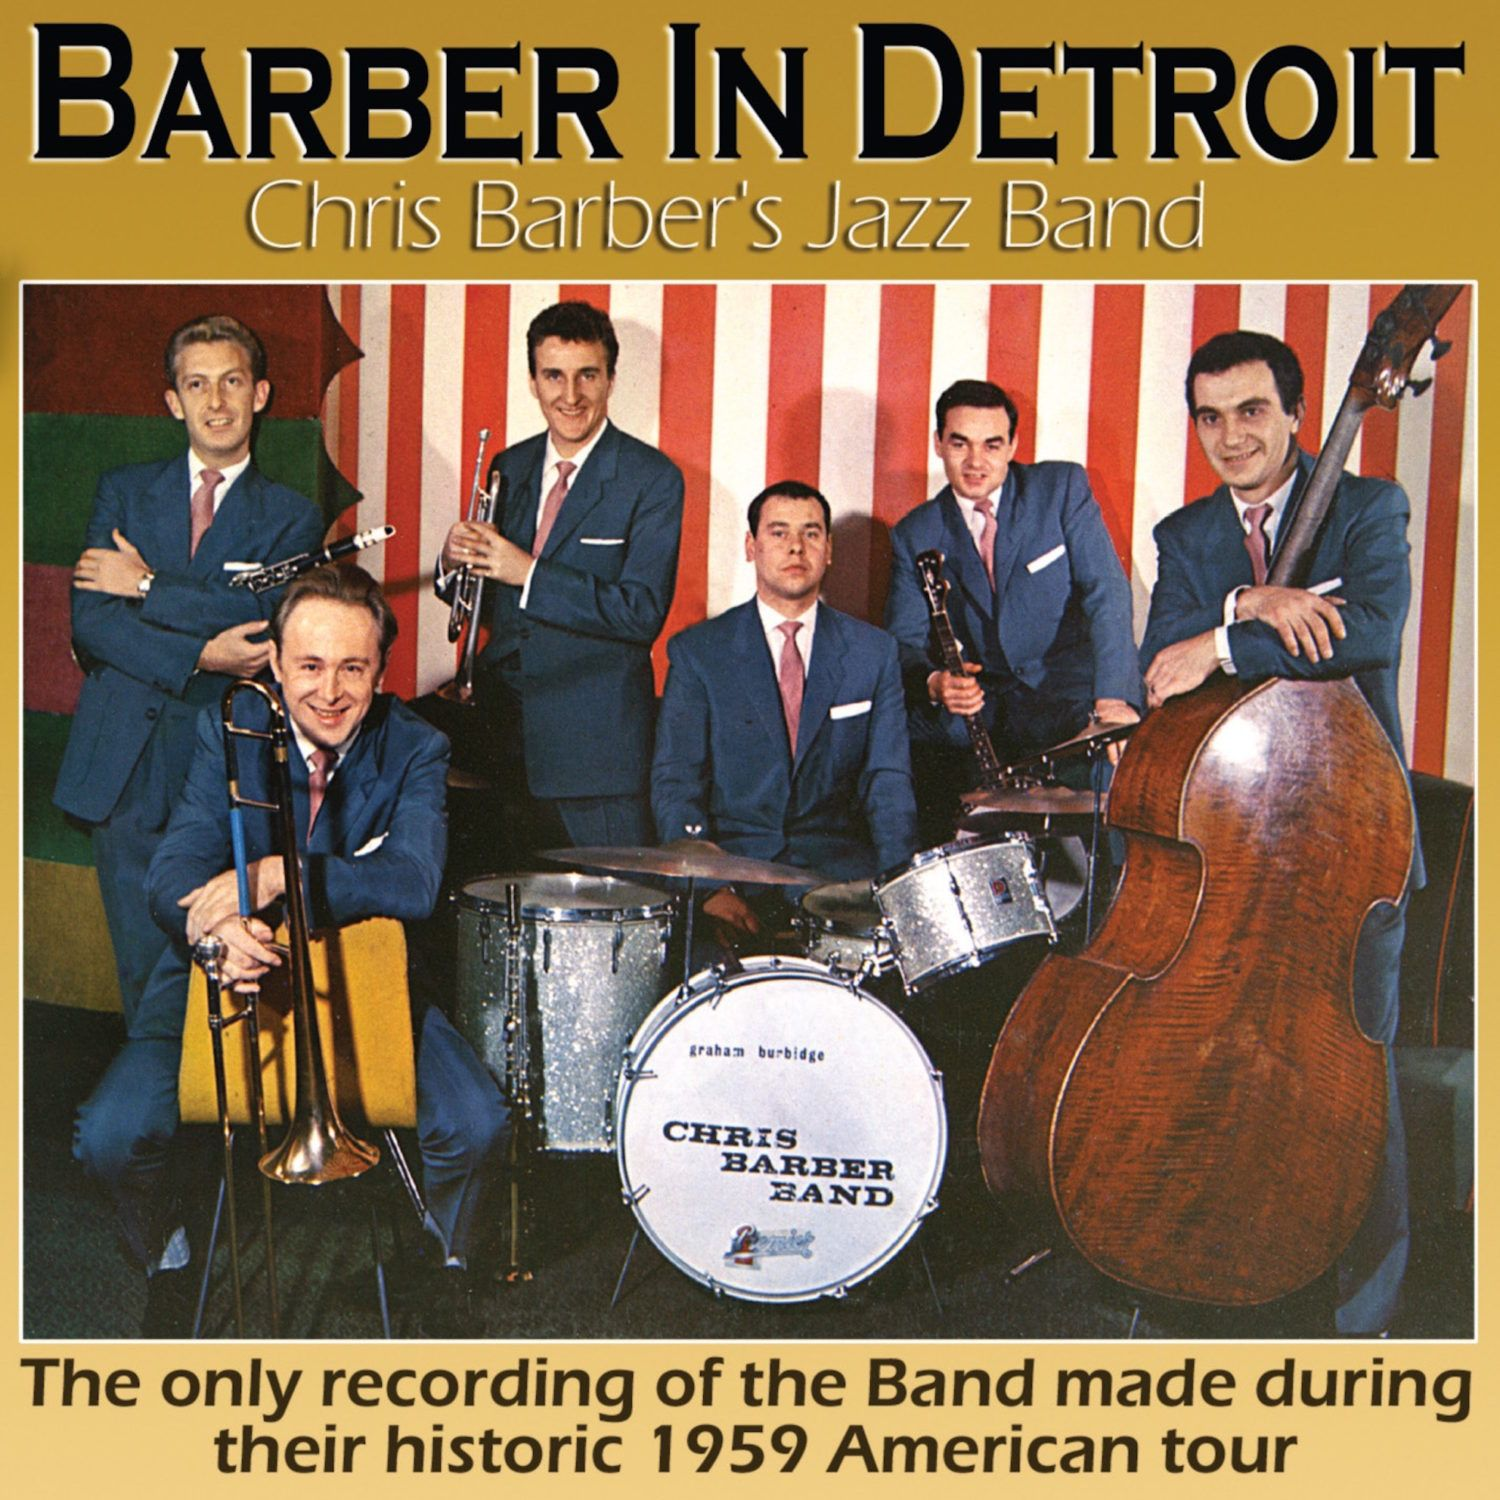 BARBER IN DETROIT LACD351